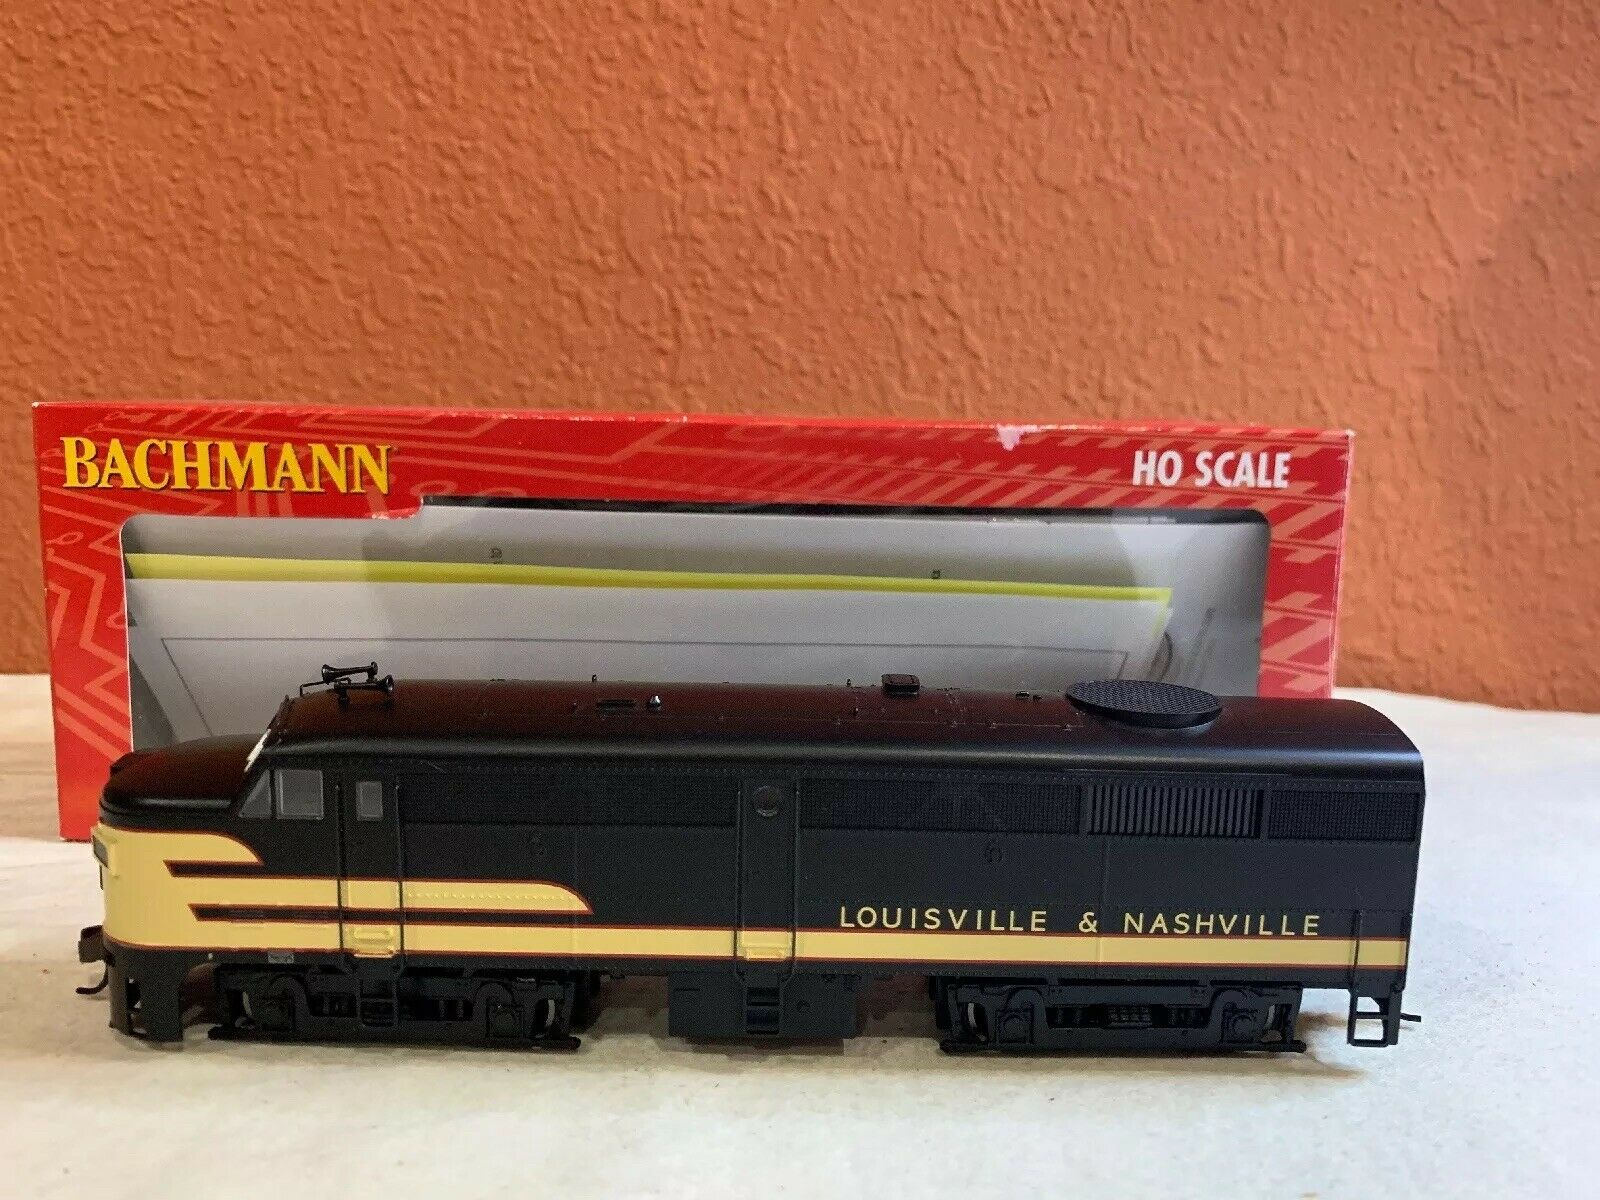 HO SCALE BACHMANN LOCO ITEM ALCO FA2 DIESEL L & N NEW DCC EQUIPPED